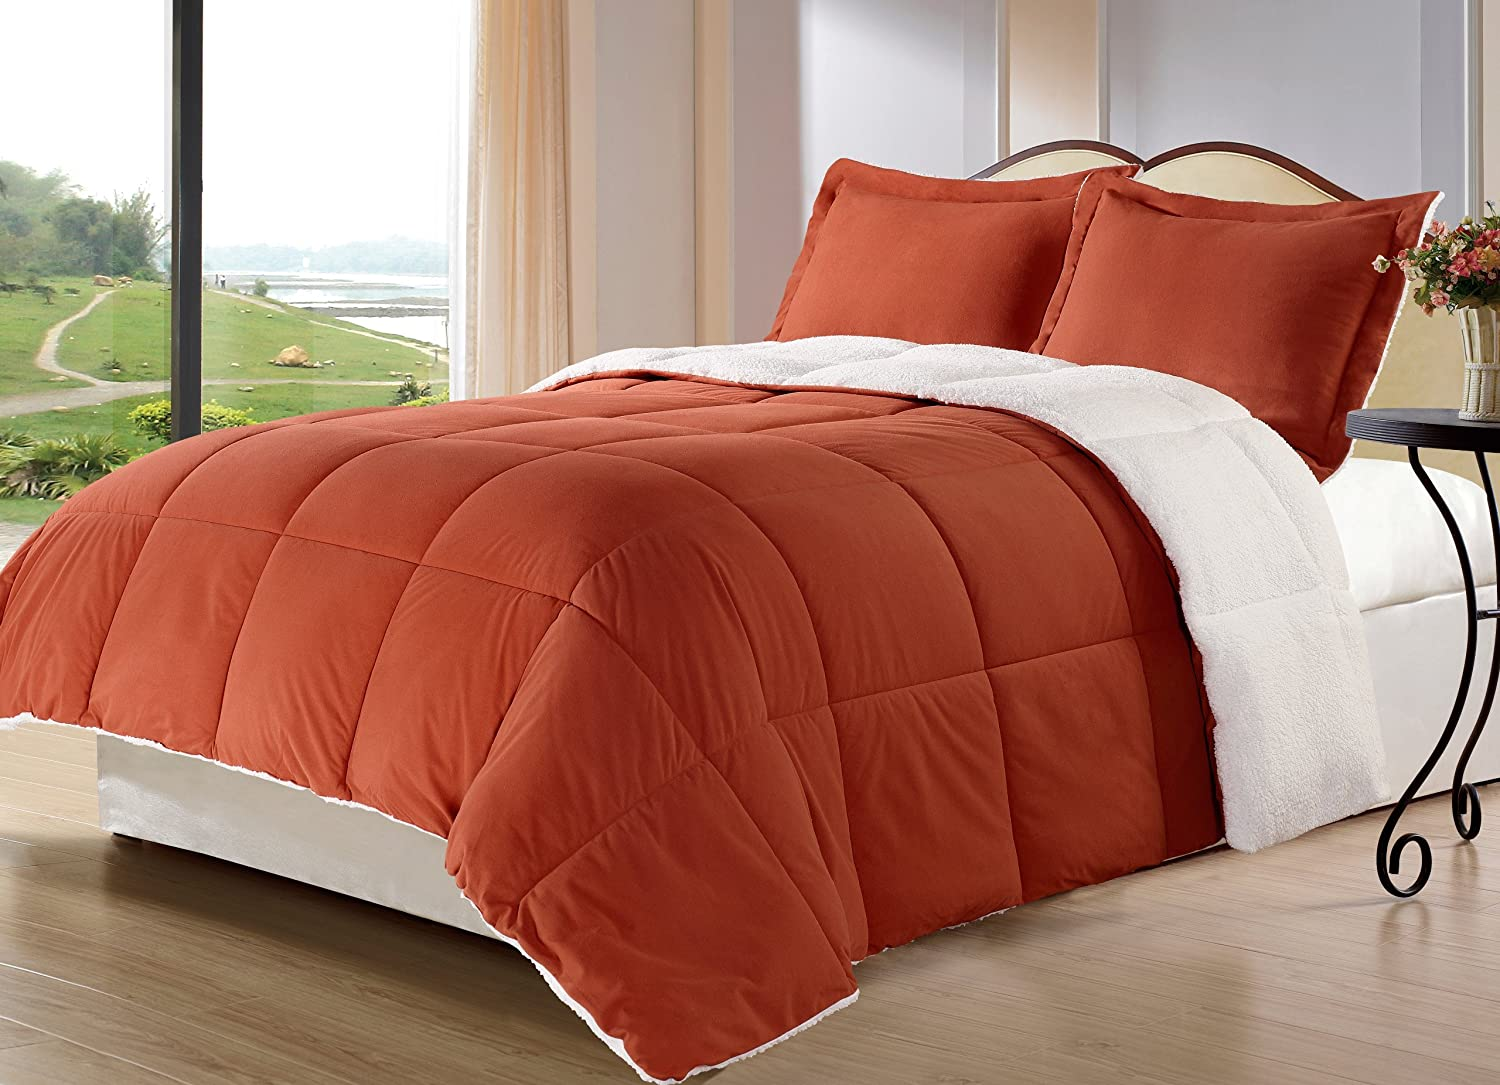 Brown and orange bedding - Cozy Beddings 3 Piece Down Alternative Mini Comforter Set